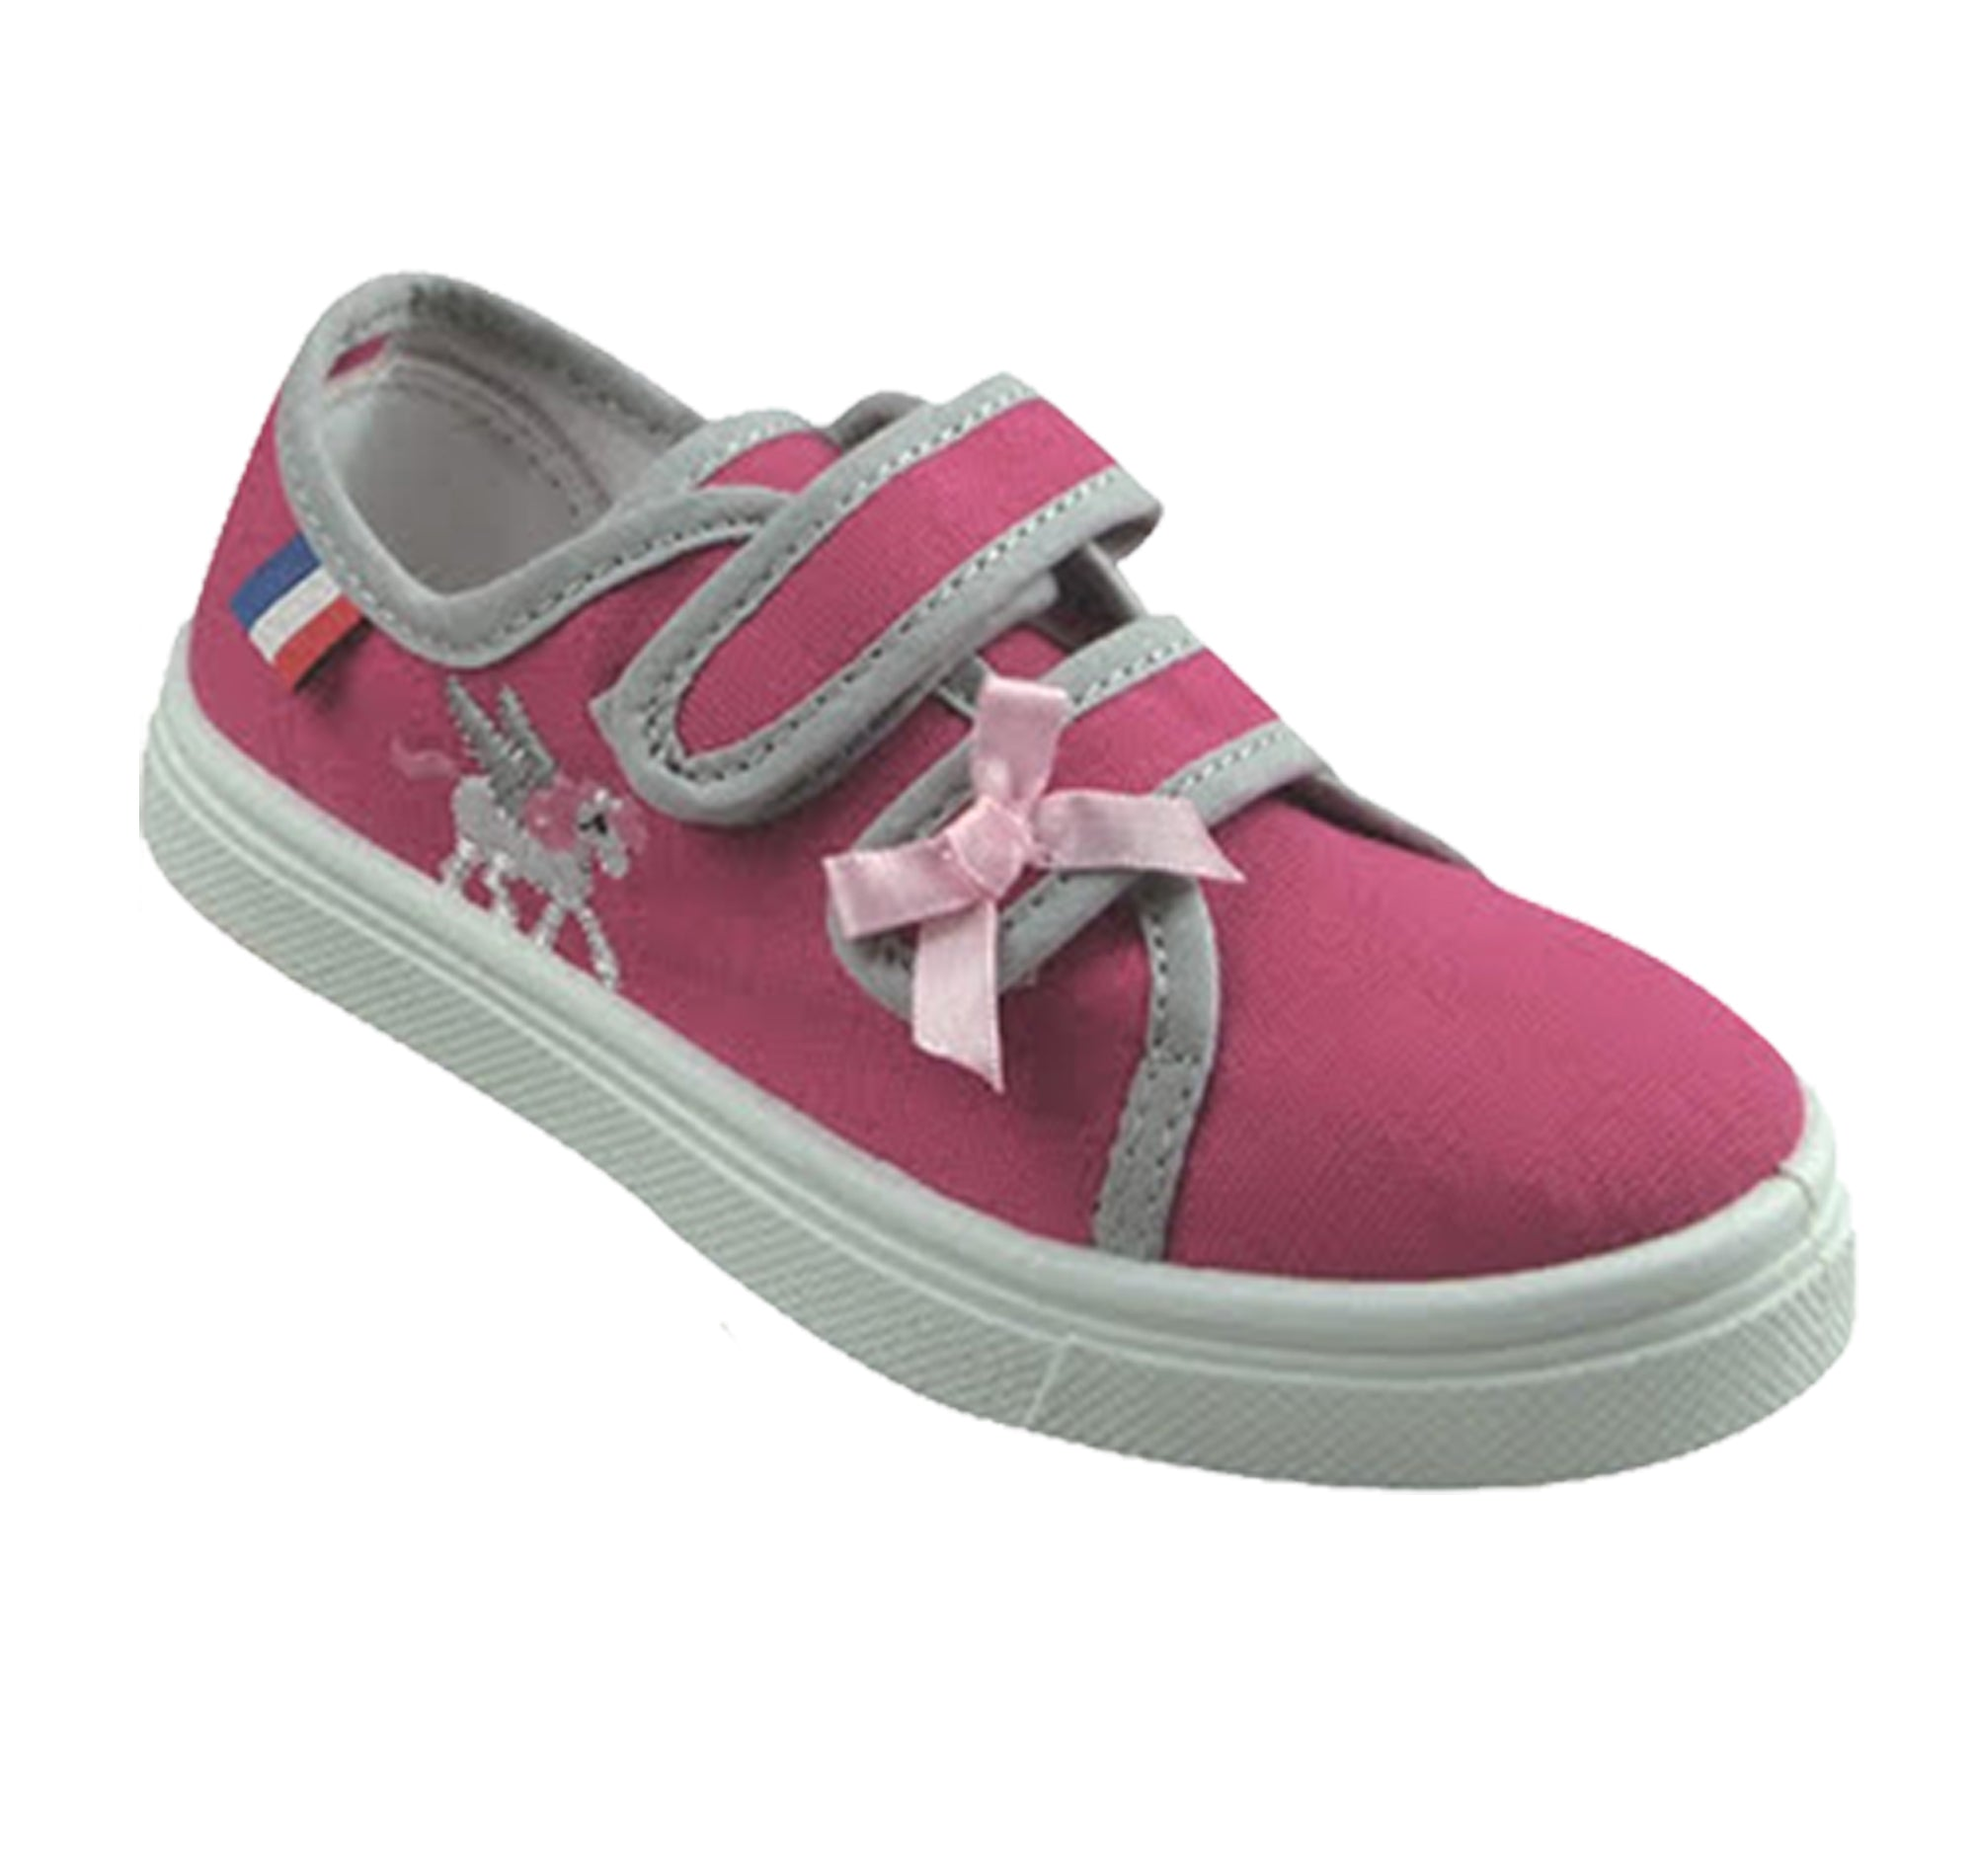 Girls Leather Shoes Star Lavender Children shoes Boys